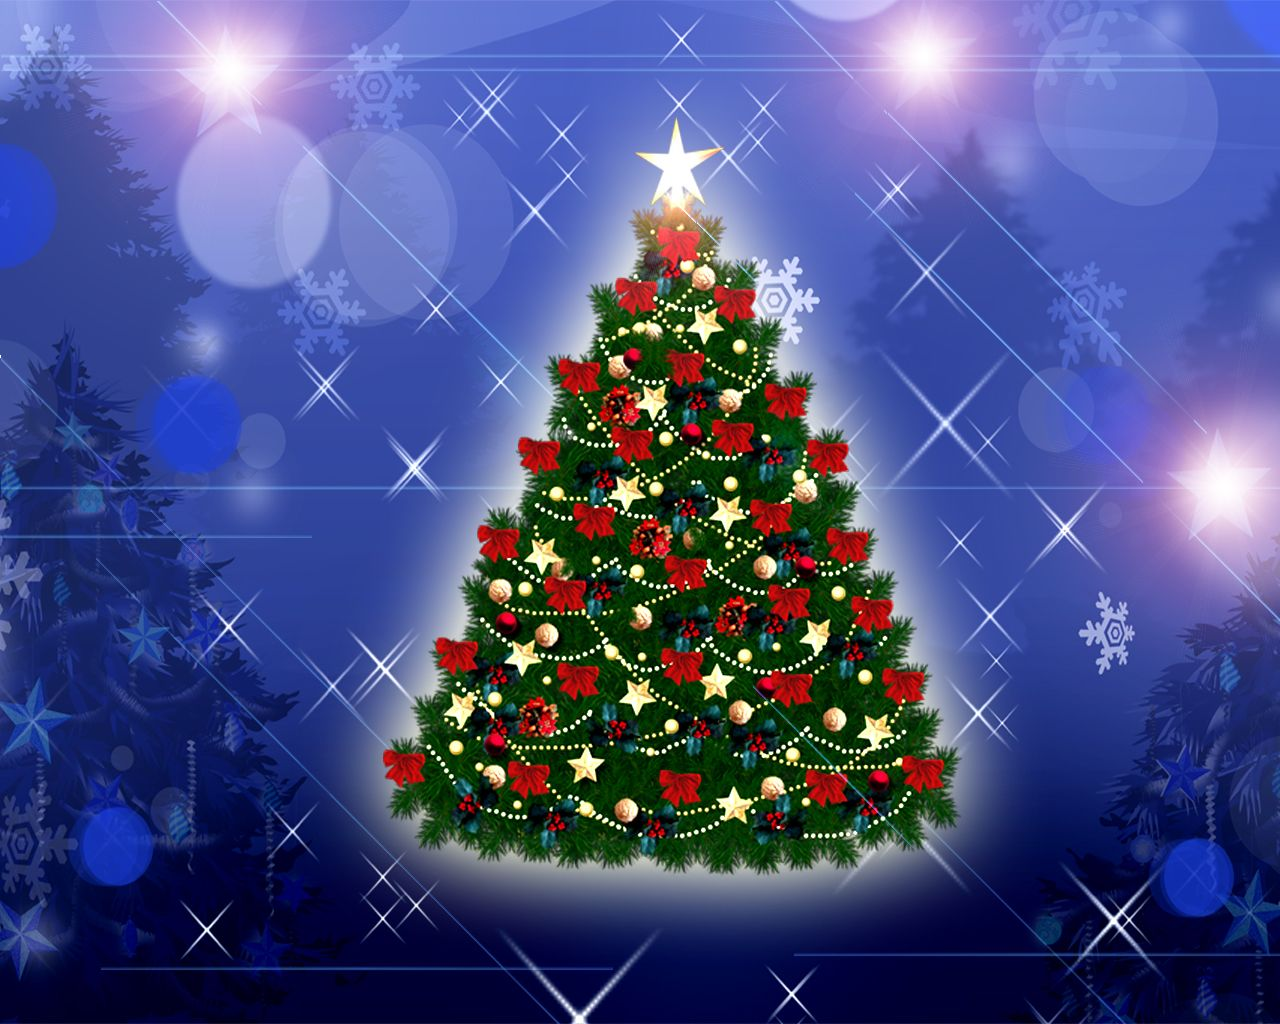 Wallpapers And Images And Photos 3d Christmas Tree Animated Christmas Wallpaper Free Christmas Tree Wallpaper Christmas Tree Images